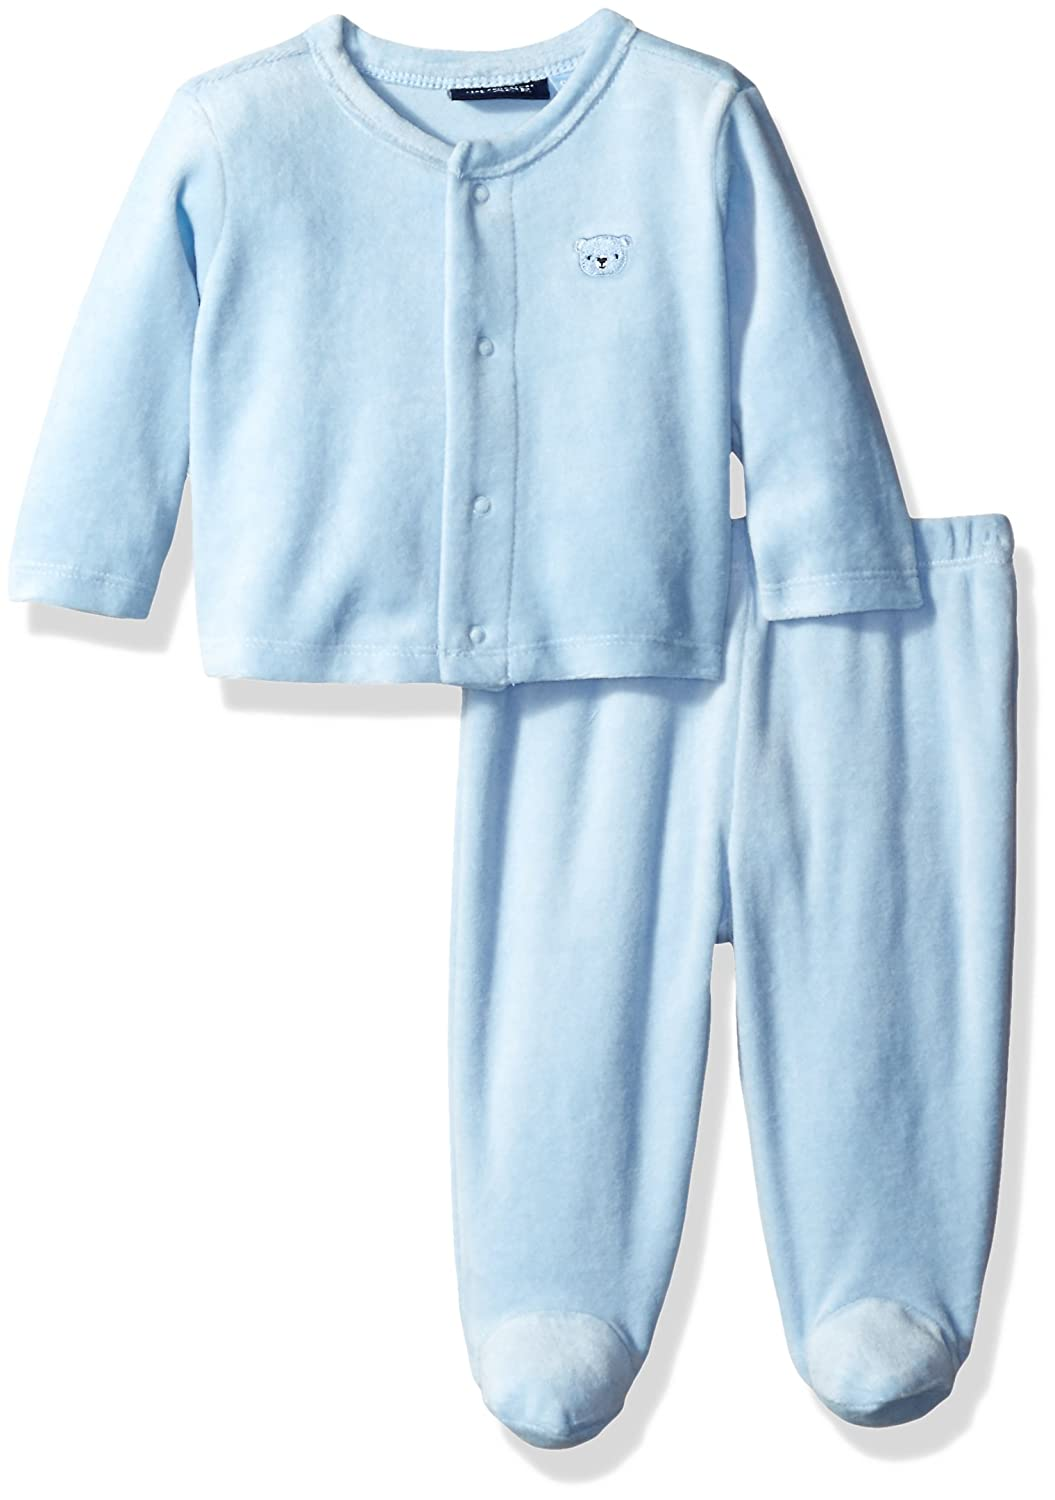 The Children's Place Baby Velour After Bath The Children' s Place Children' s Apparel